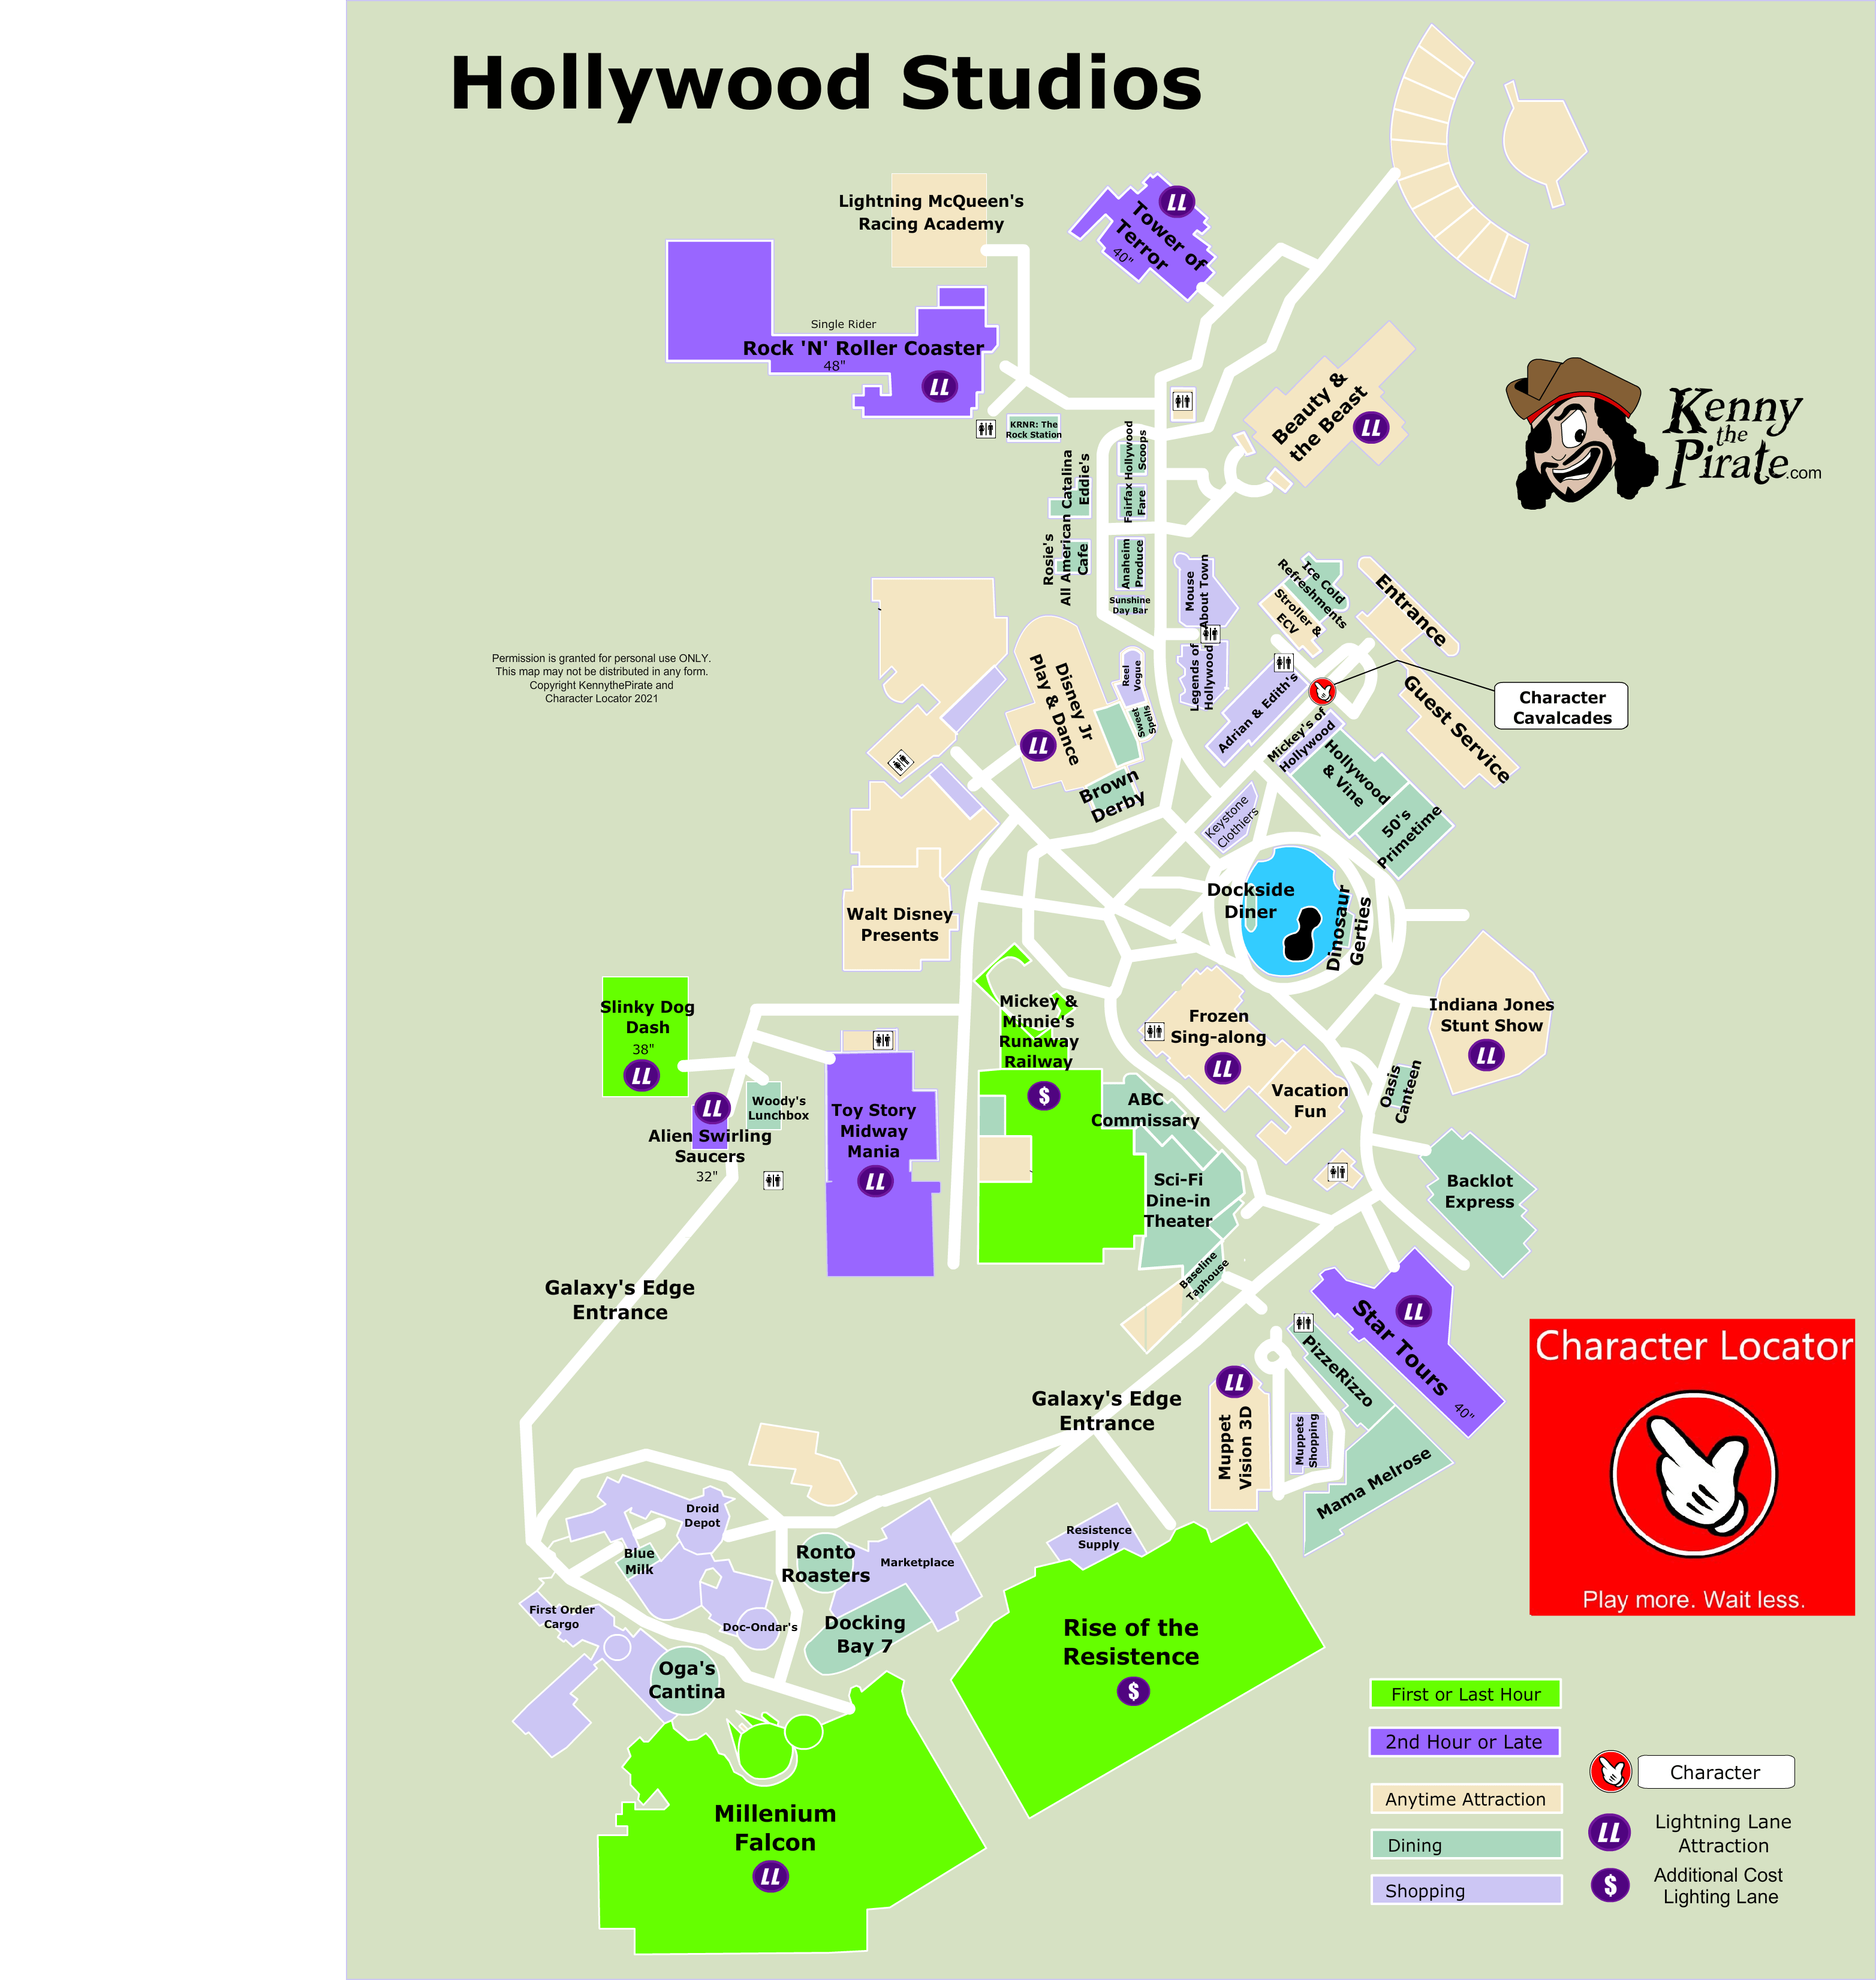 Disney Hollywood Studios Map Archives - KennythePirate.com